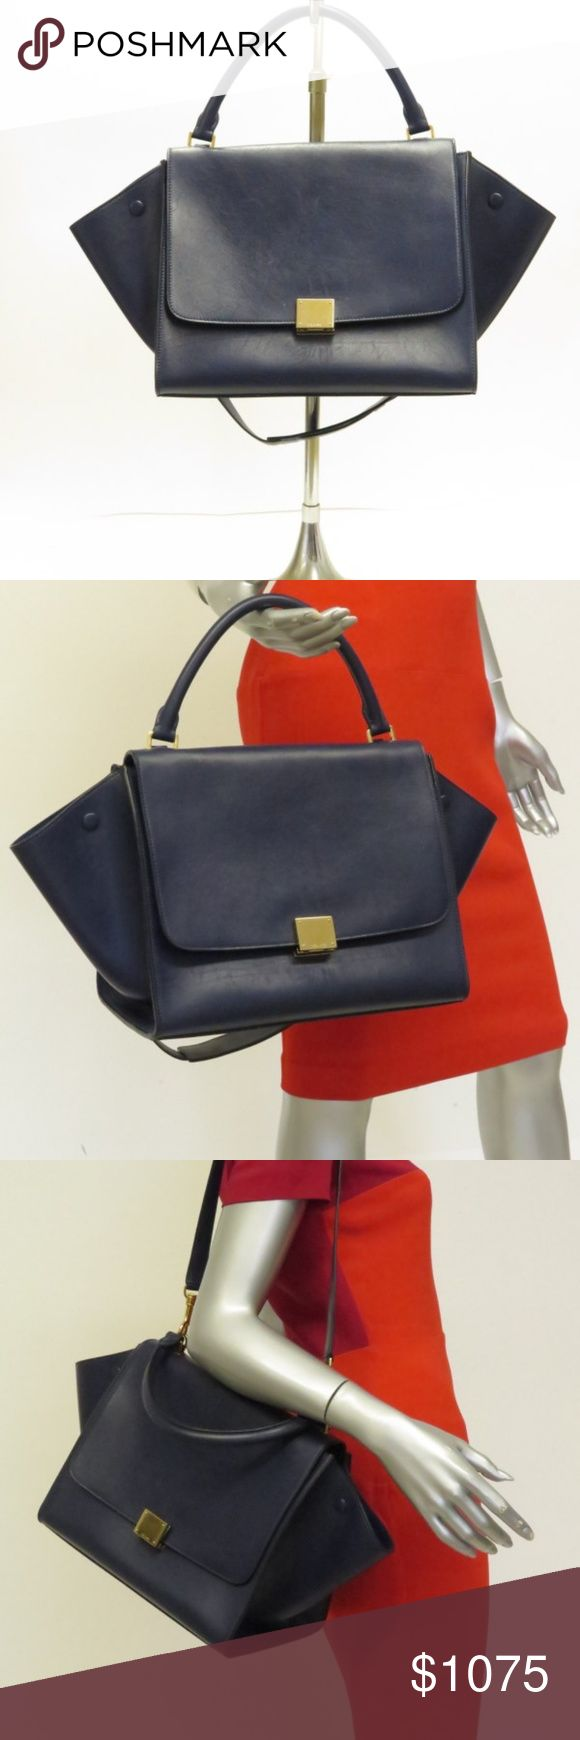 Celine Trapeze Medium Shoulder Bag Navy d8360b7fad